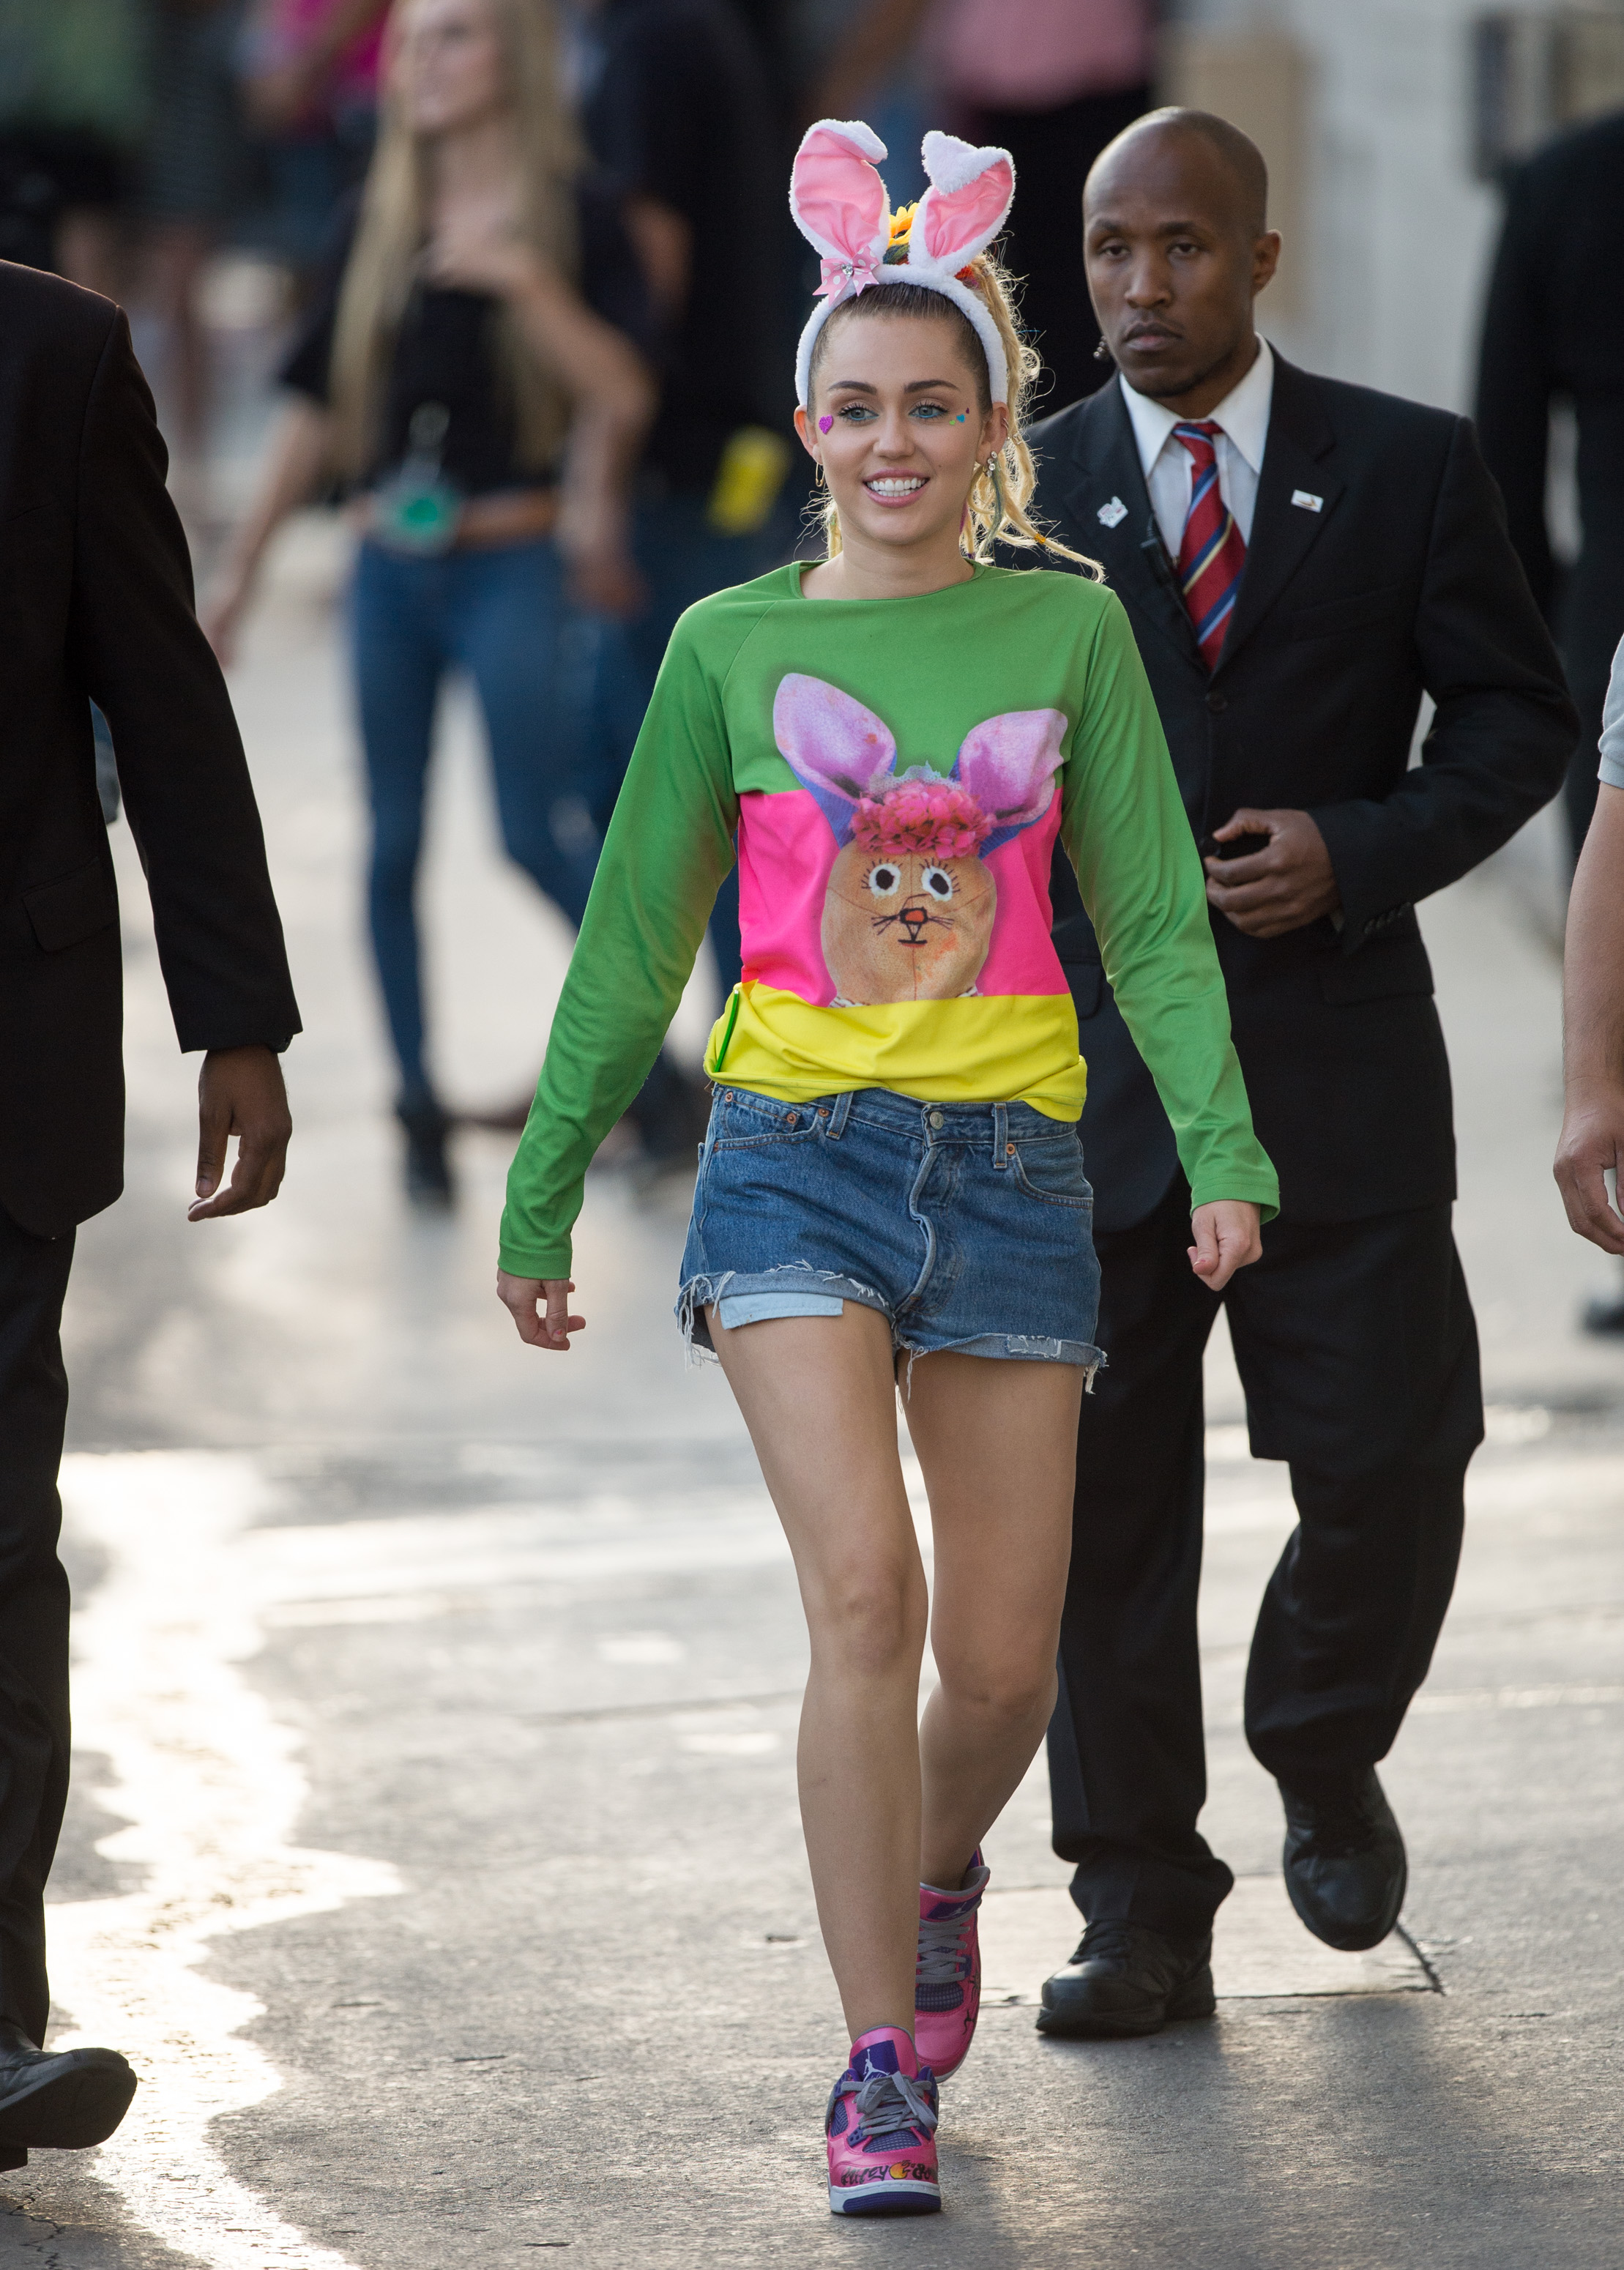 Miley Cyrus Fashion And Style Evolution The Style Metamorphosis Of Miley Cyrus